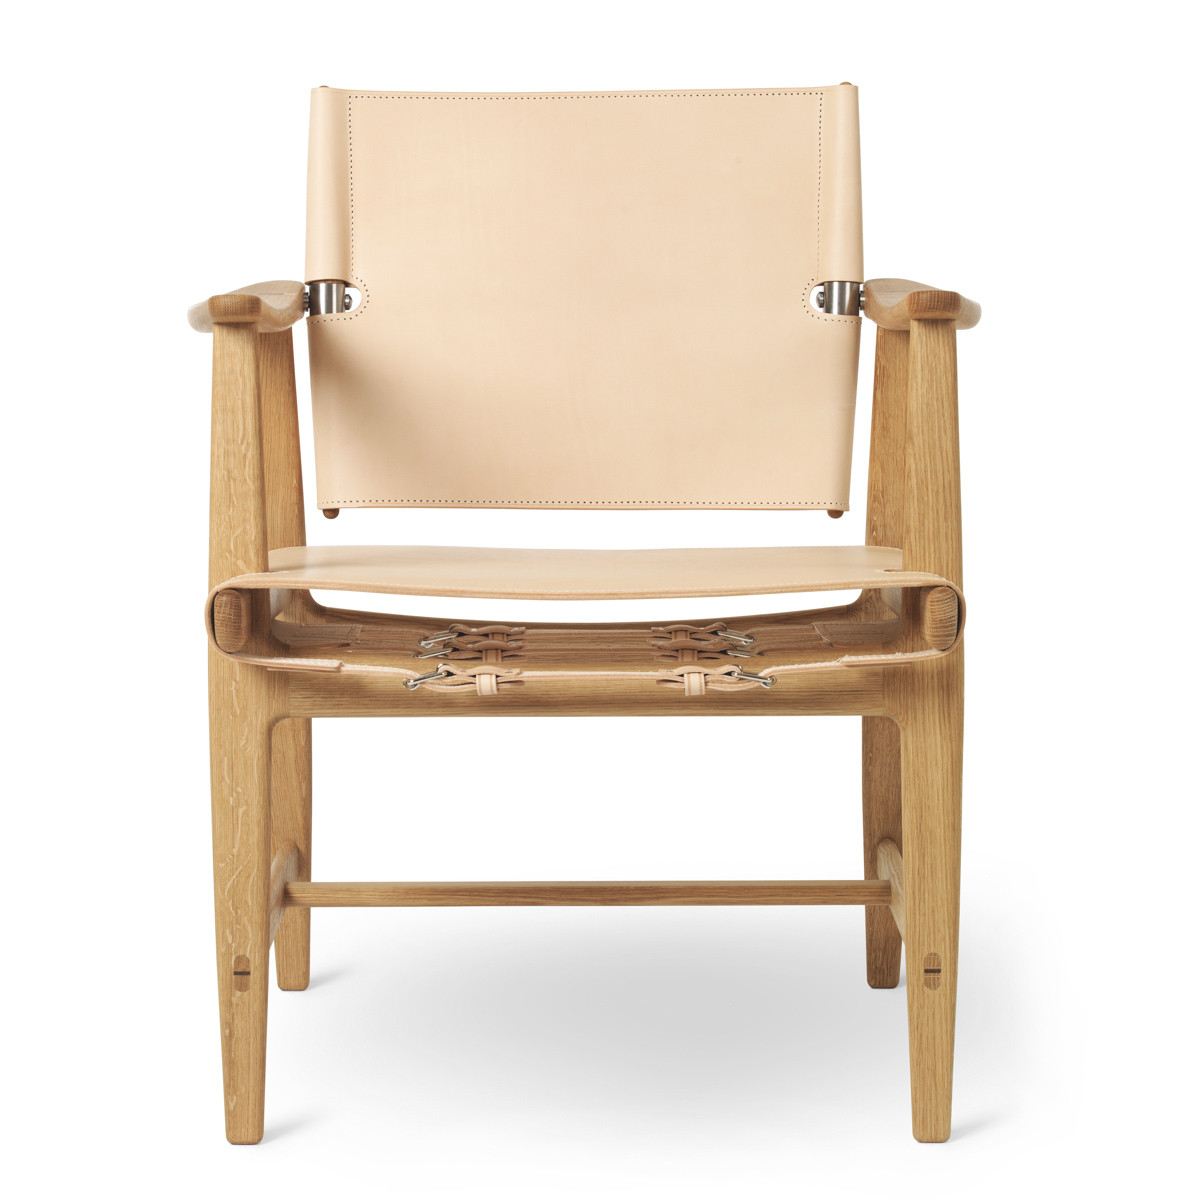 Carl Hansen Huntsman BM1106 Chair